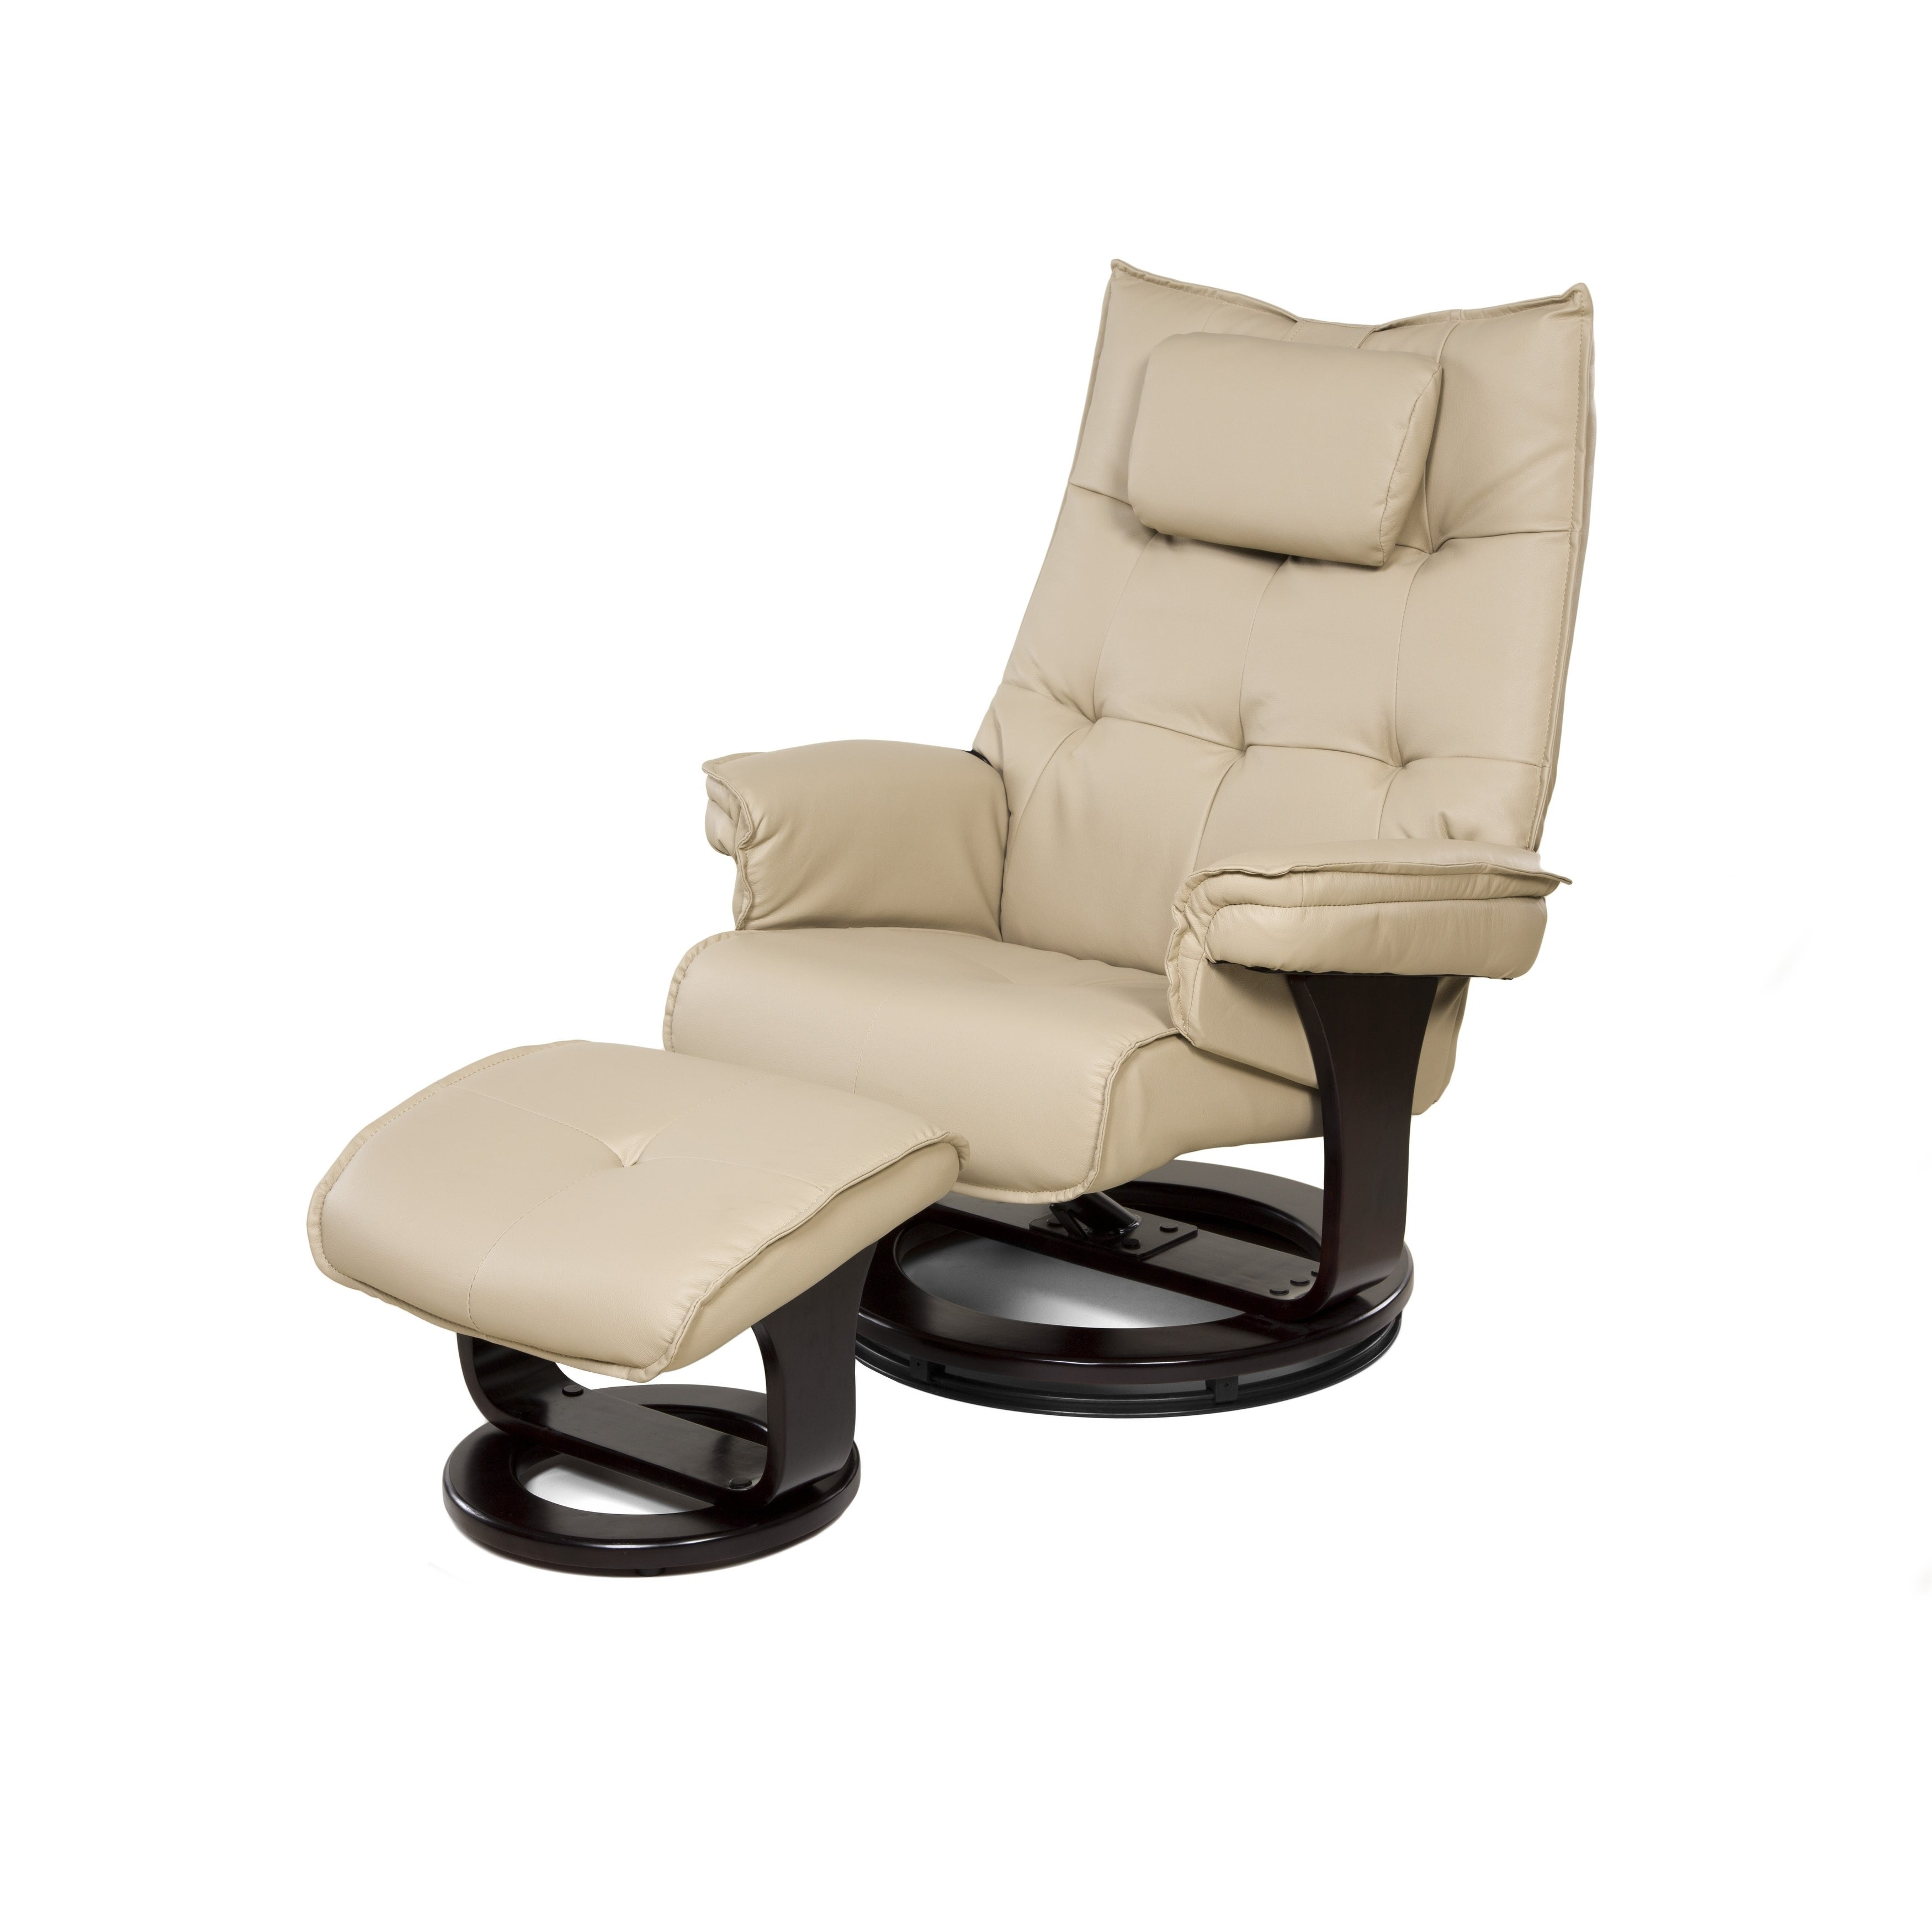 Charmant Shop Relaxzen 60 051002 8 Motor Massage Recliner With Lumbar Heat And  Ottoman, Cream   Free Shipping Today   Overstock.com   17679293